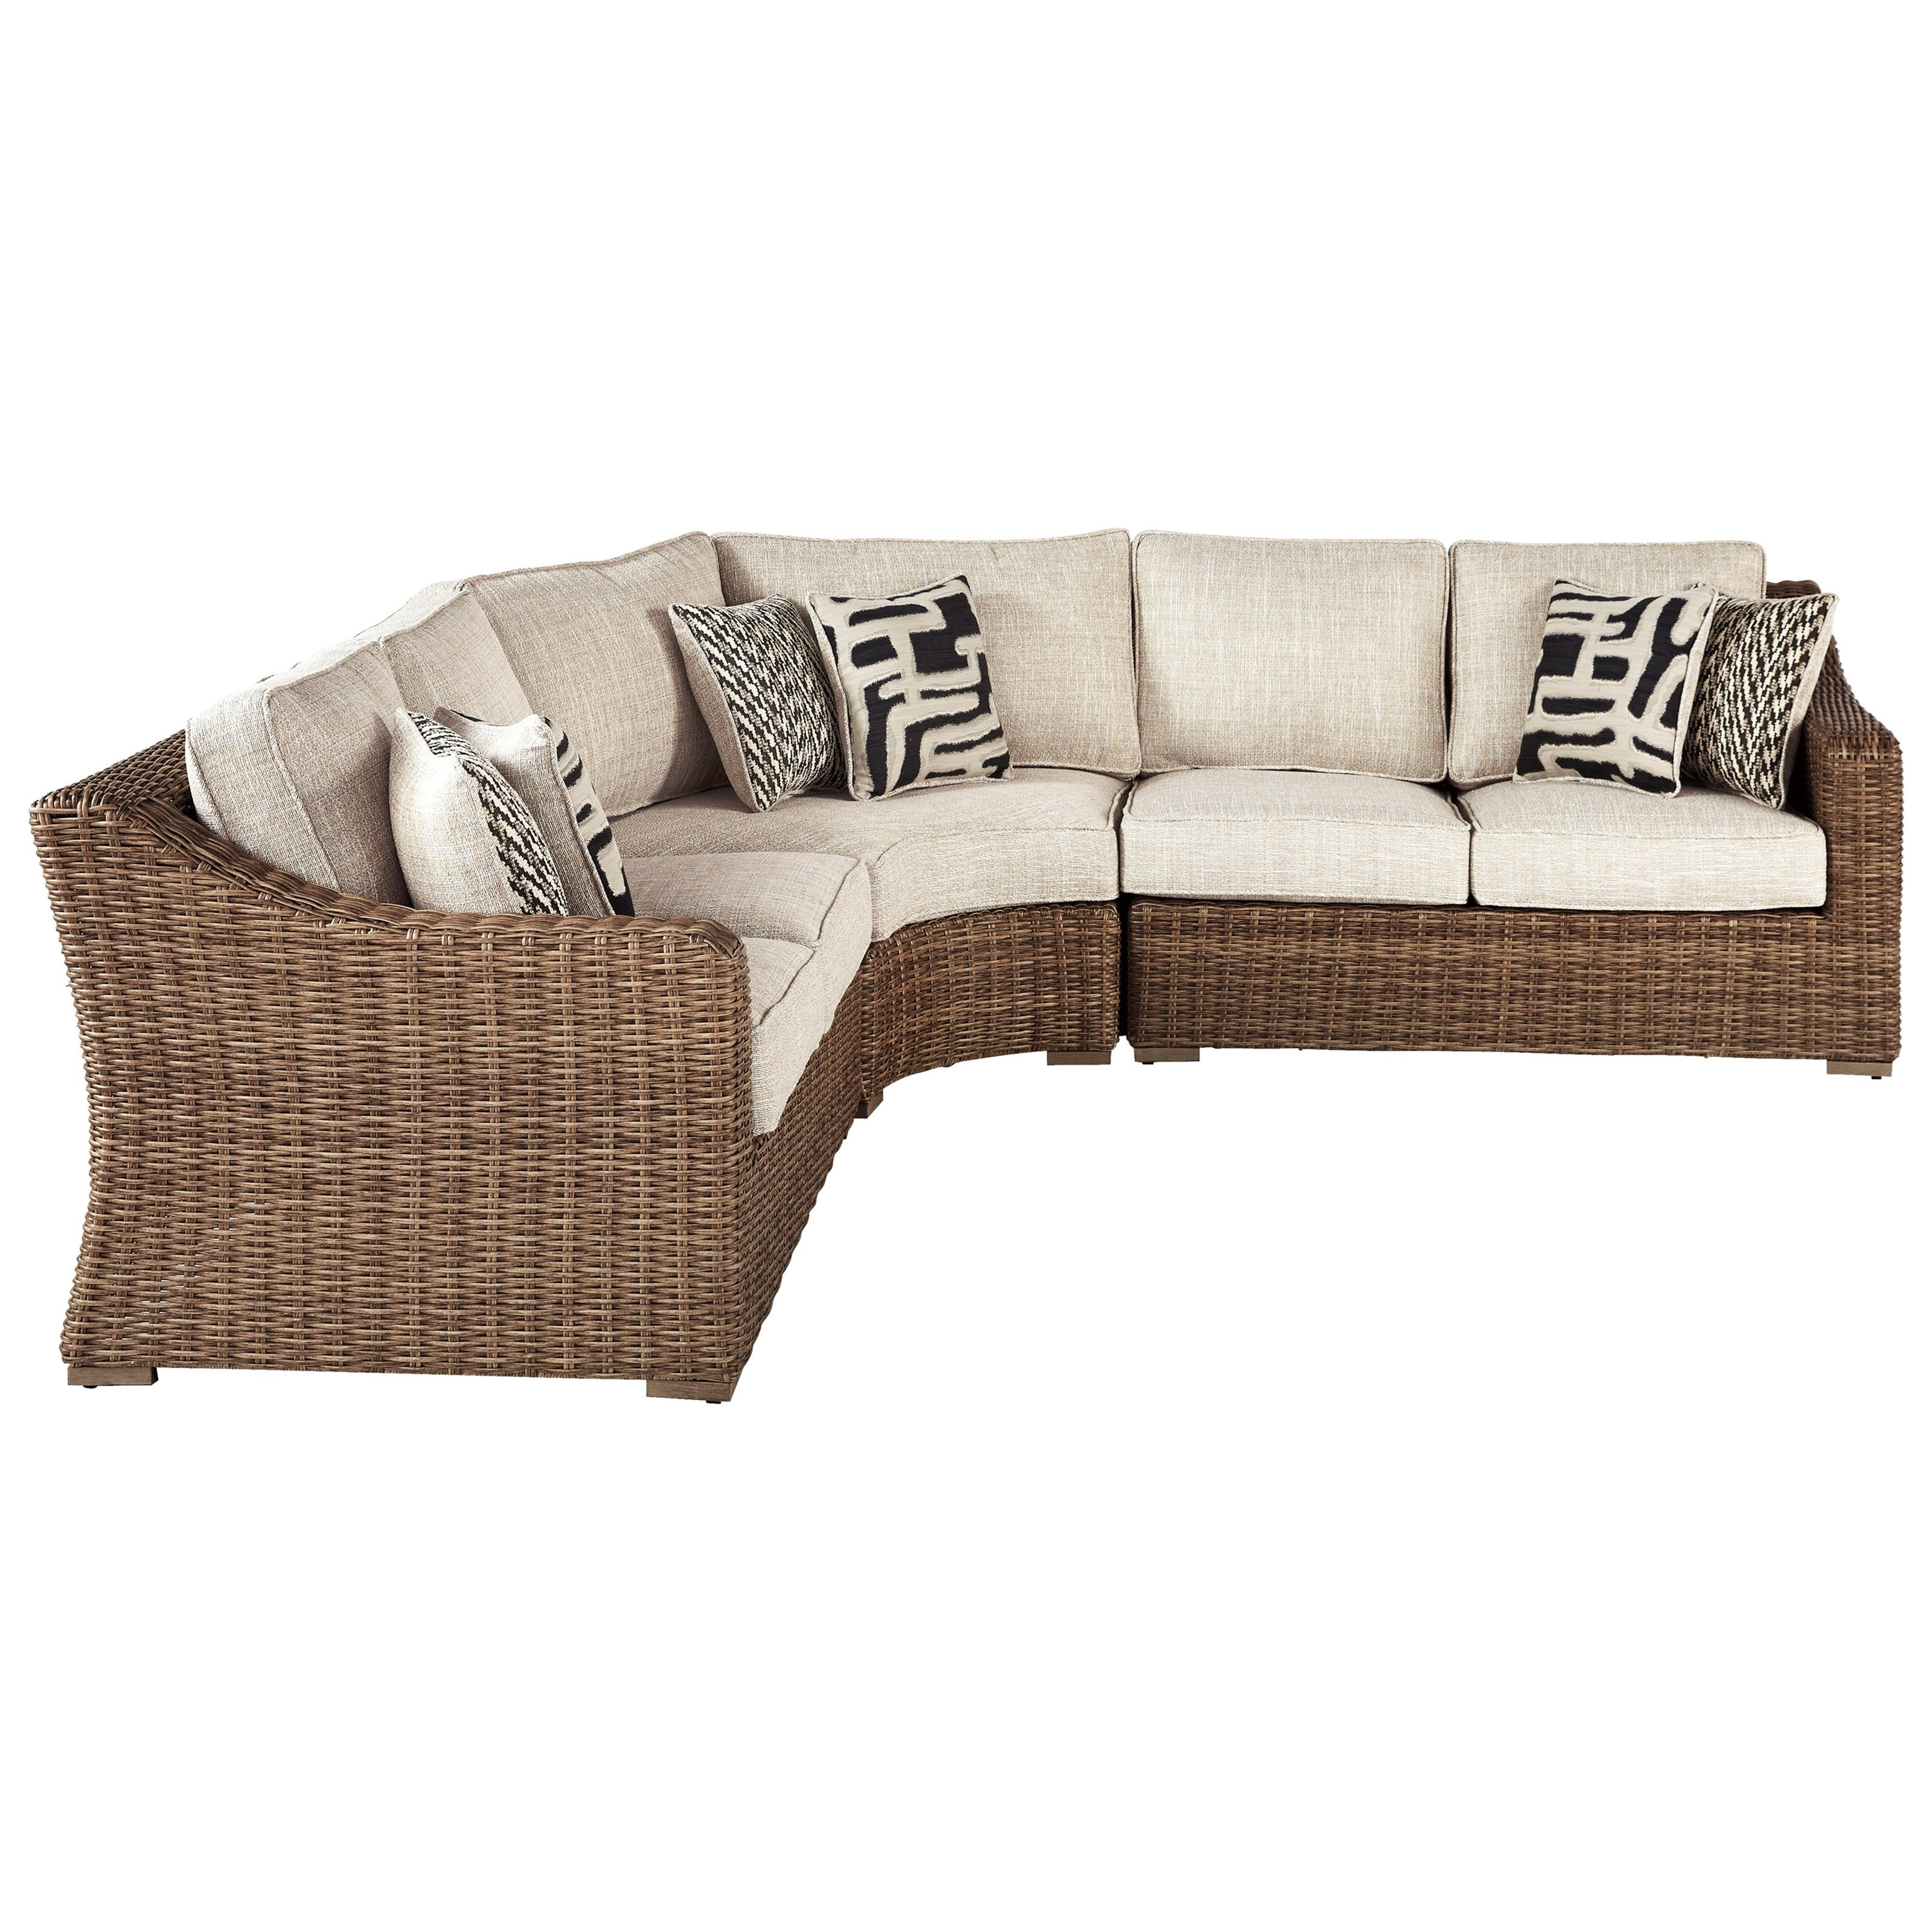 Beachcroft 4 Piece Sectional by Signature Design by Ashley at Lapeer Furniture & Mattress Center